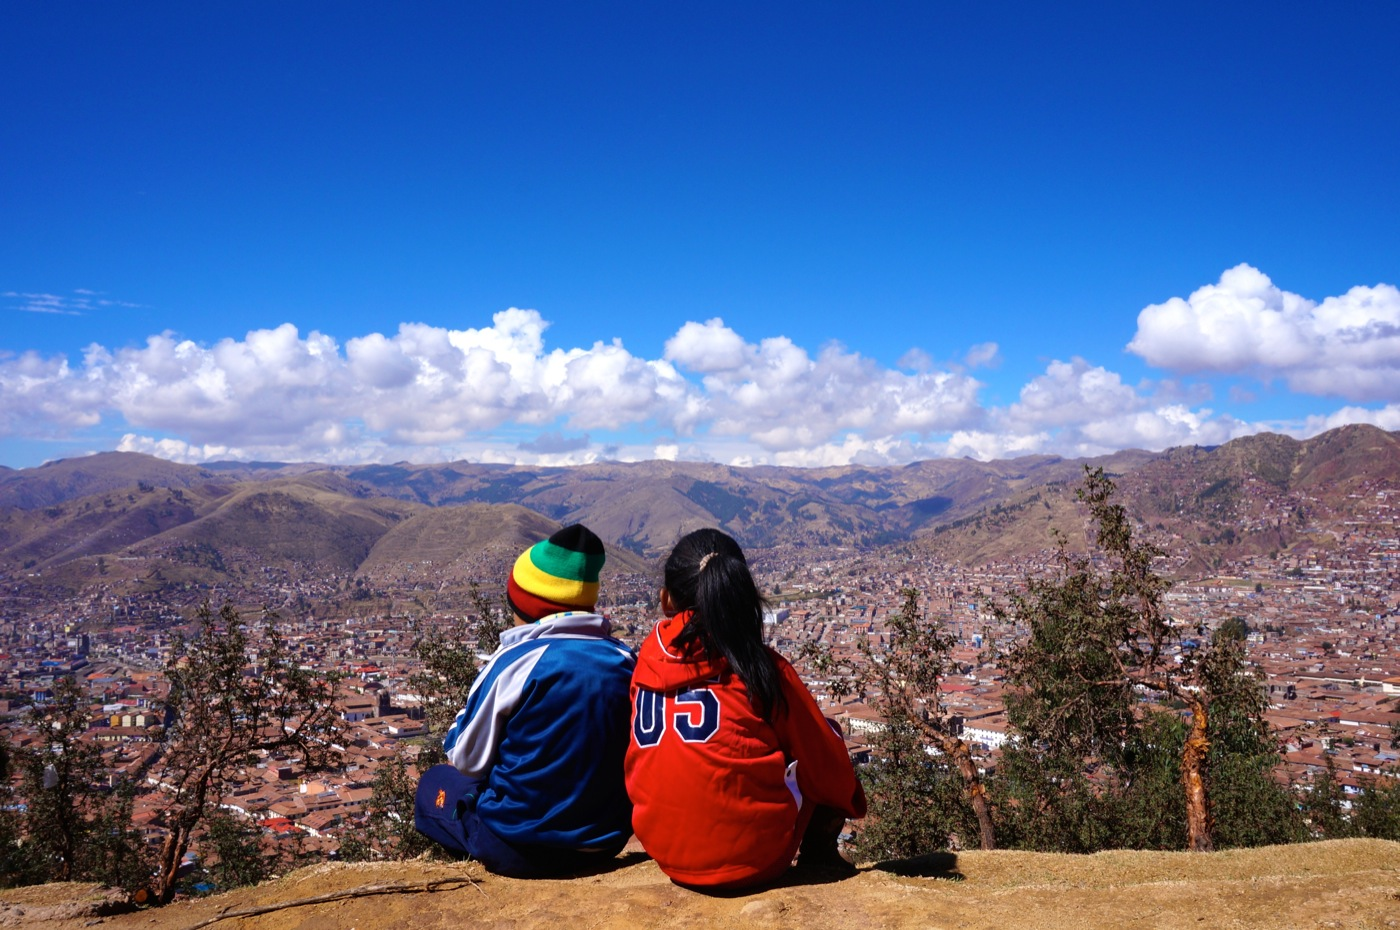 GirlsLove2Travel Cuzco